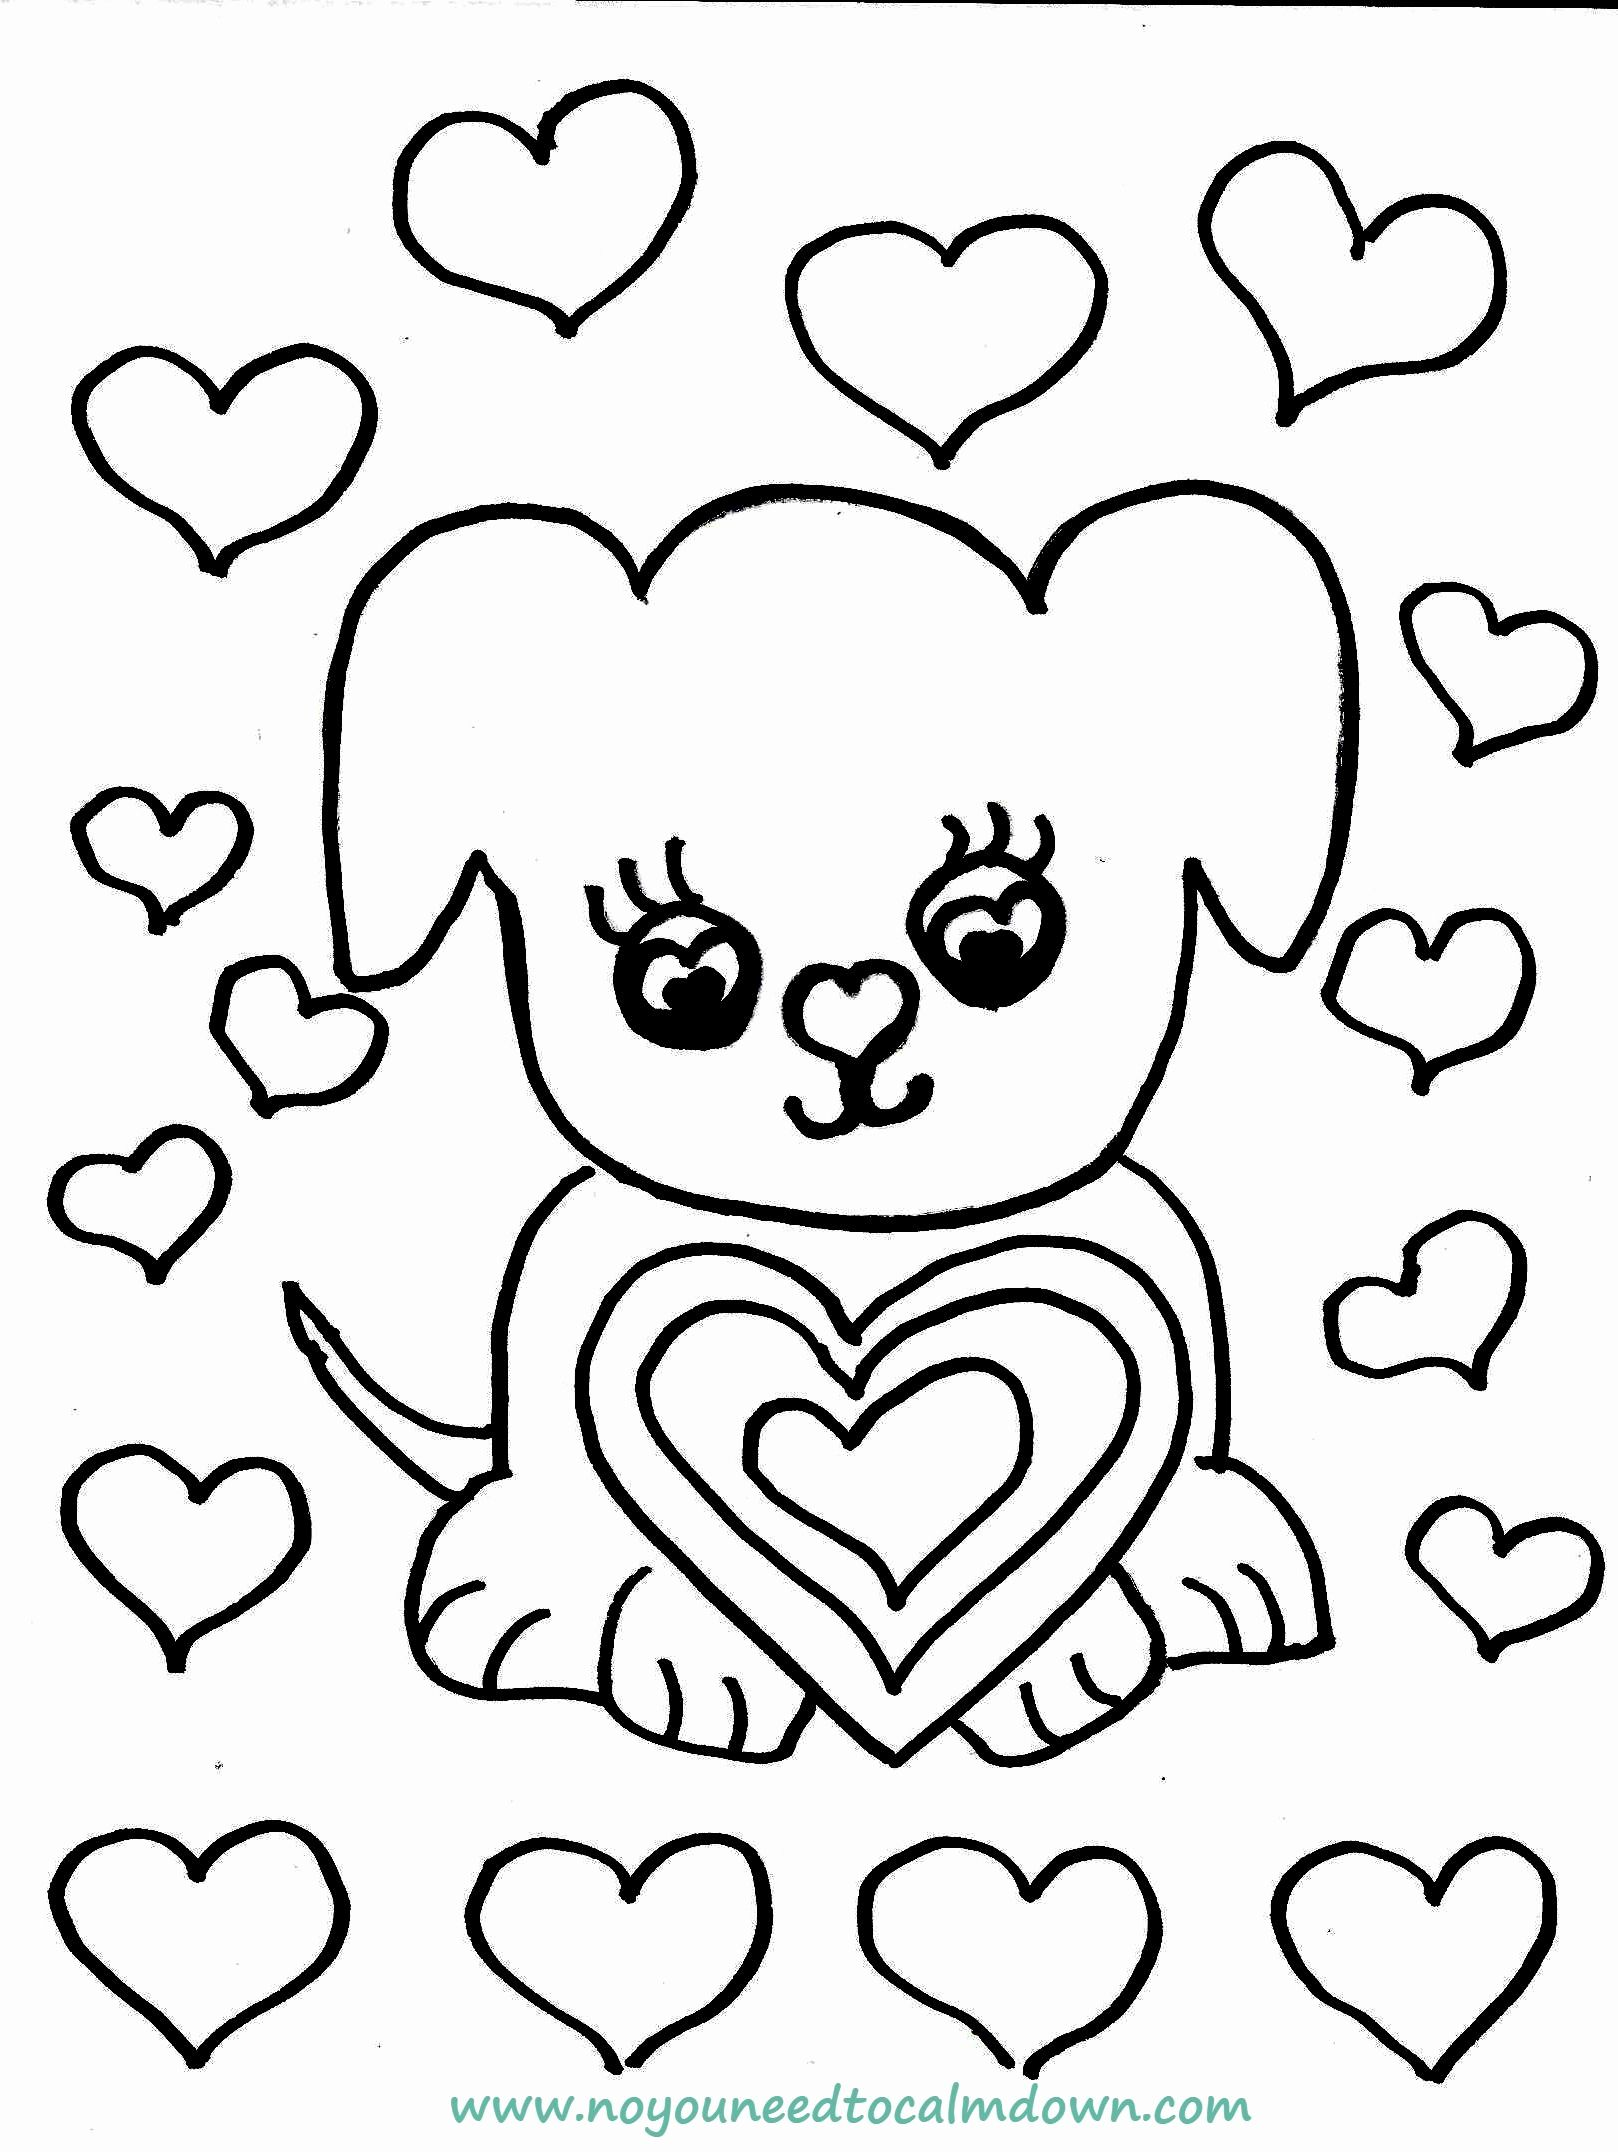 Pin On Heart Coloring Pages For Kids